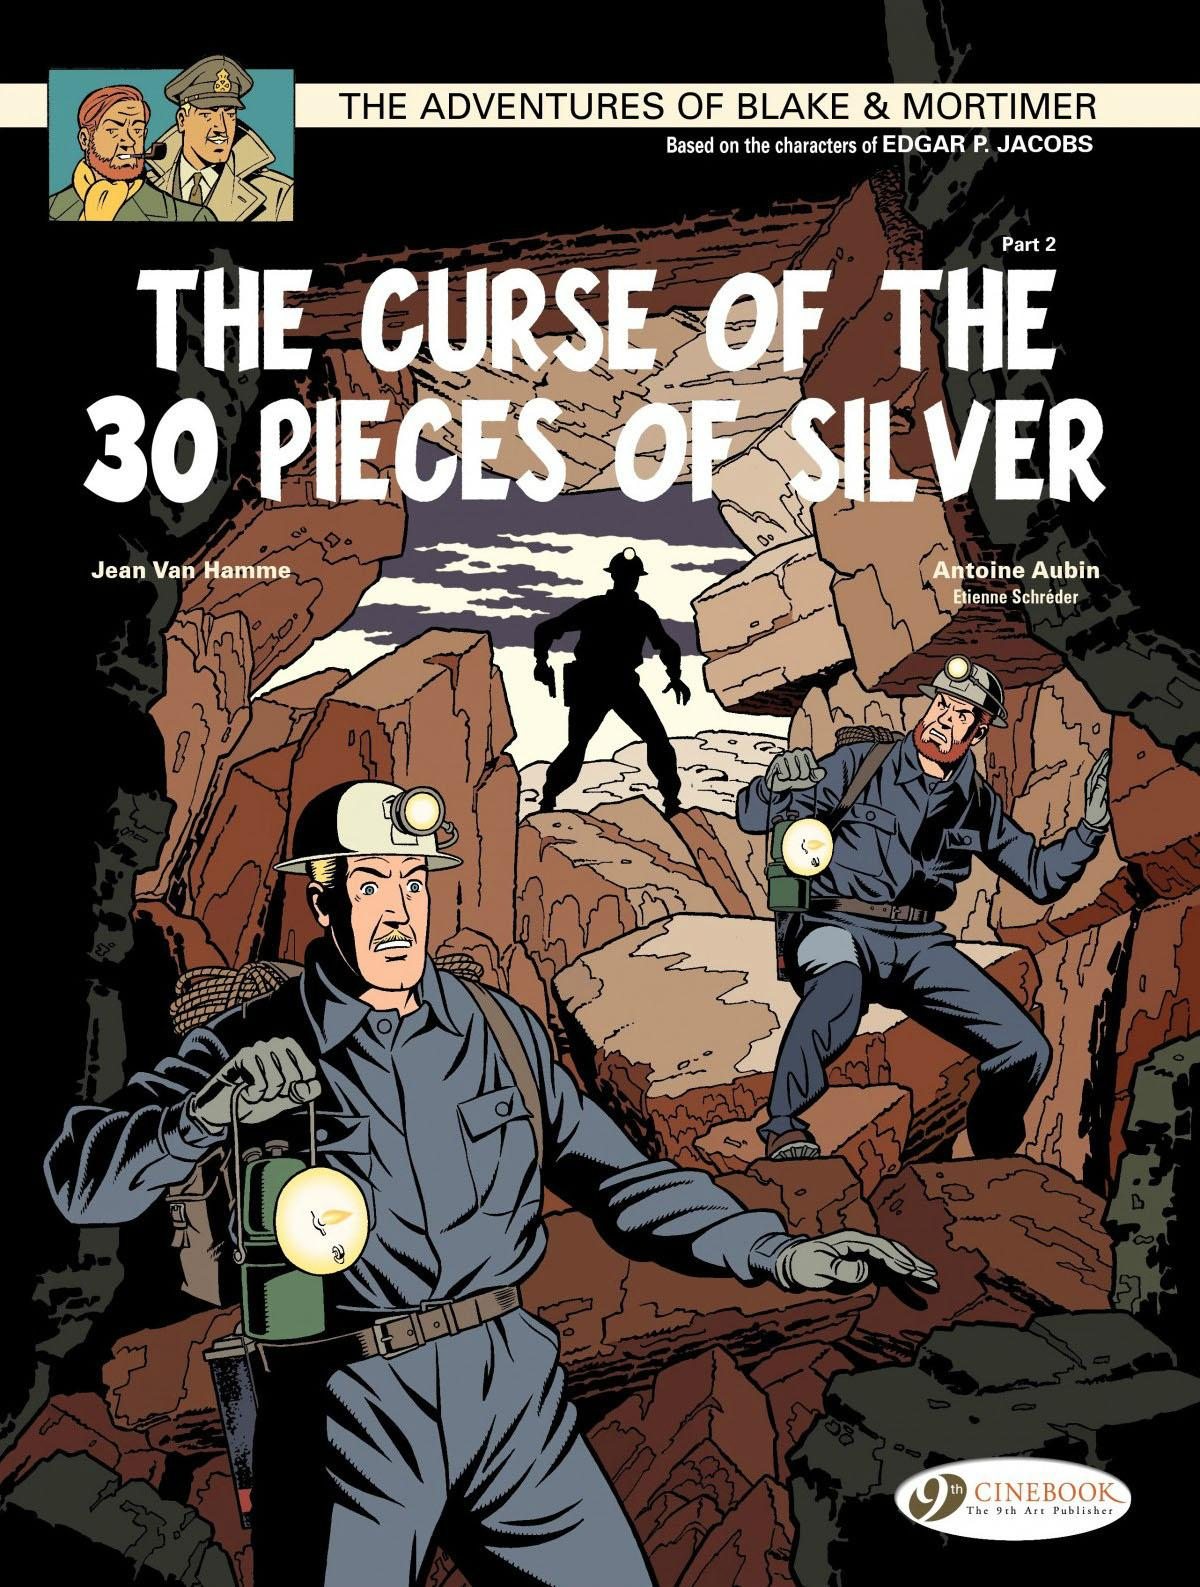 Blake and Mortimer 14 - The Curse of the 30 Pieces of Silver Part 2 free download